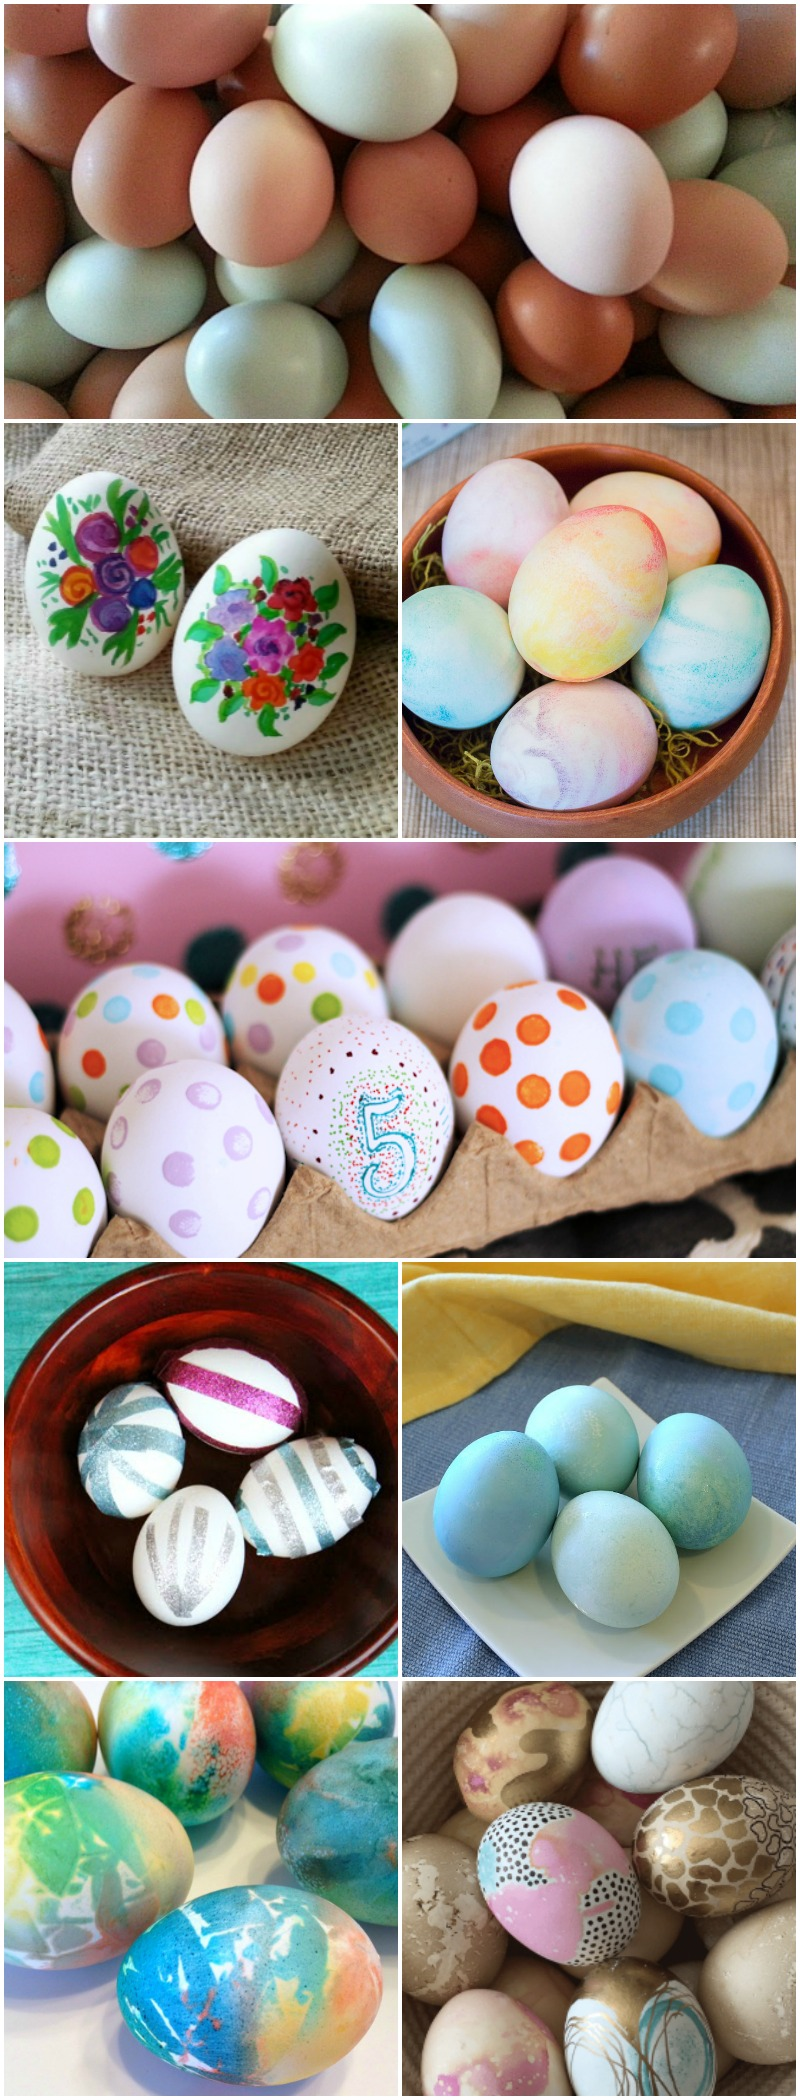 21 Creative Ways to Decorate Easter Eggs